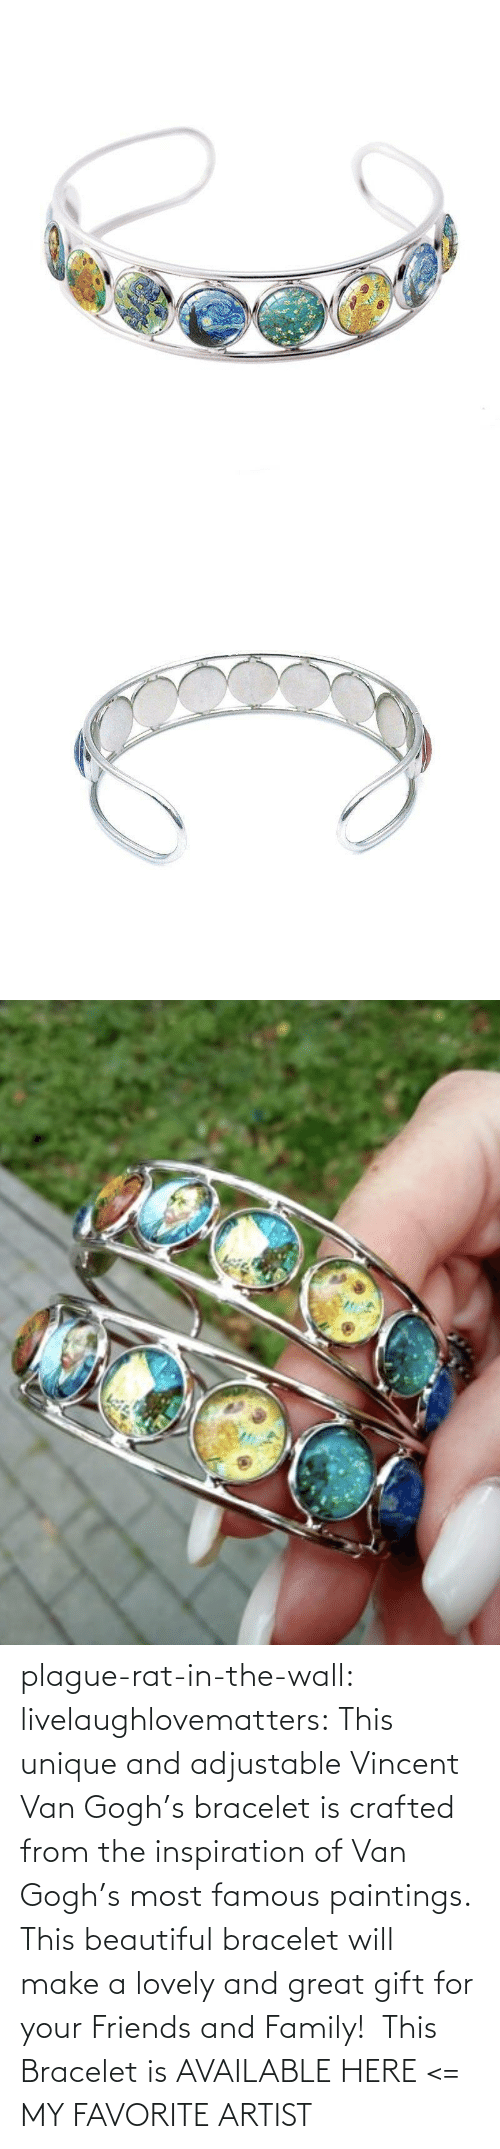 Beautiful, Family, and Friends: plague-rat-in-the-wall:  livelaughlovematters: This unique and adjustable Vincent Van Gogh's bracelet is crafted from the inspiration of Van Gogh's most famous paintings. This beautiful bracelet will make a lovely and great gift for your Friends and Family!  This Bracelet is AVAILABLE HERE <=  MY FAVORITE ARTIST